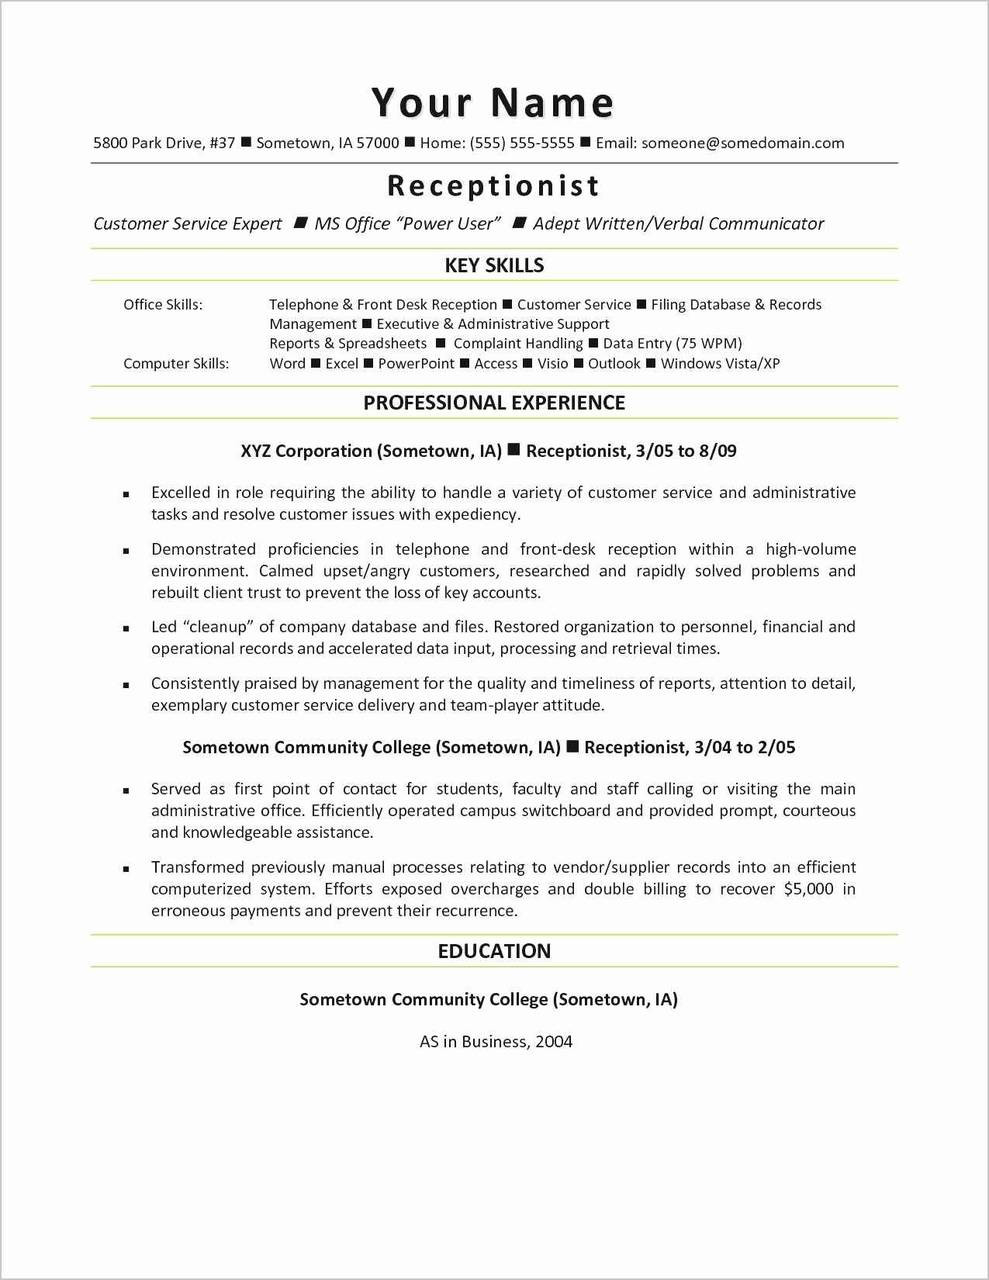 Correctional Officer Job Description Resume - 64 Creative attention to Detail Resume Chart Stock